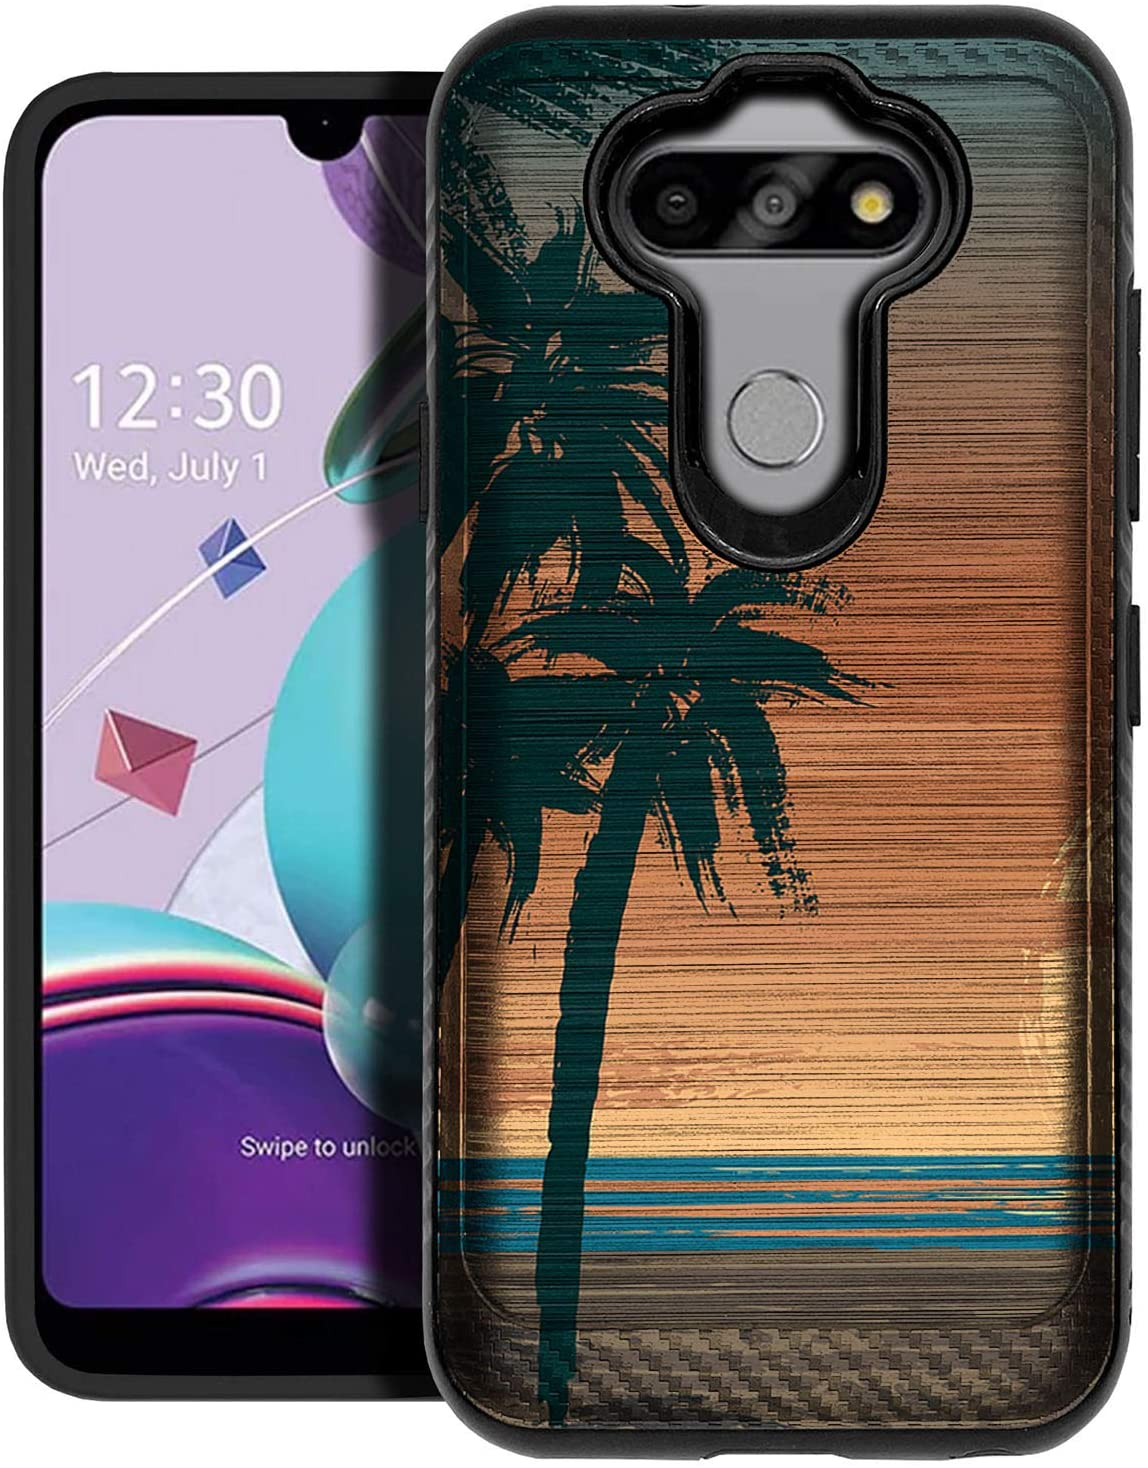 CasesOnDeck Cover Case Compatible with [LG Aristo 5/ Fortune 3/ Tribute Monarch/ K31/ Phoenix 5] [Brushed Armor] Heavy Duty Protection Matte Black Case (Beach Palms)